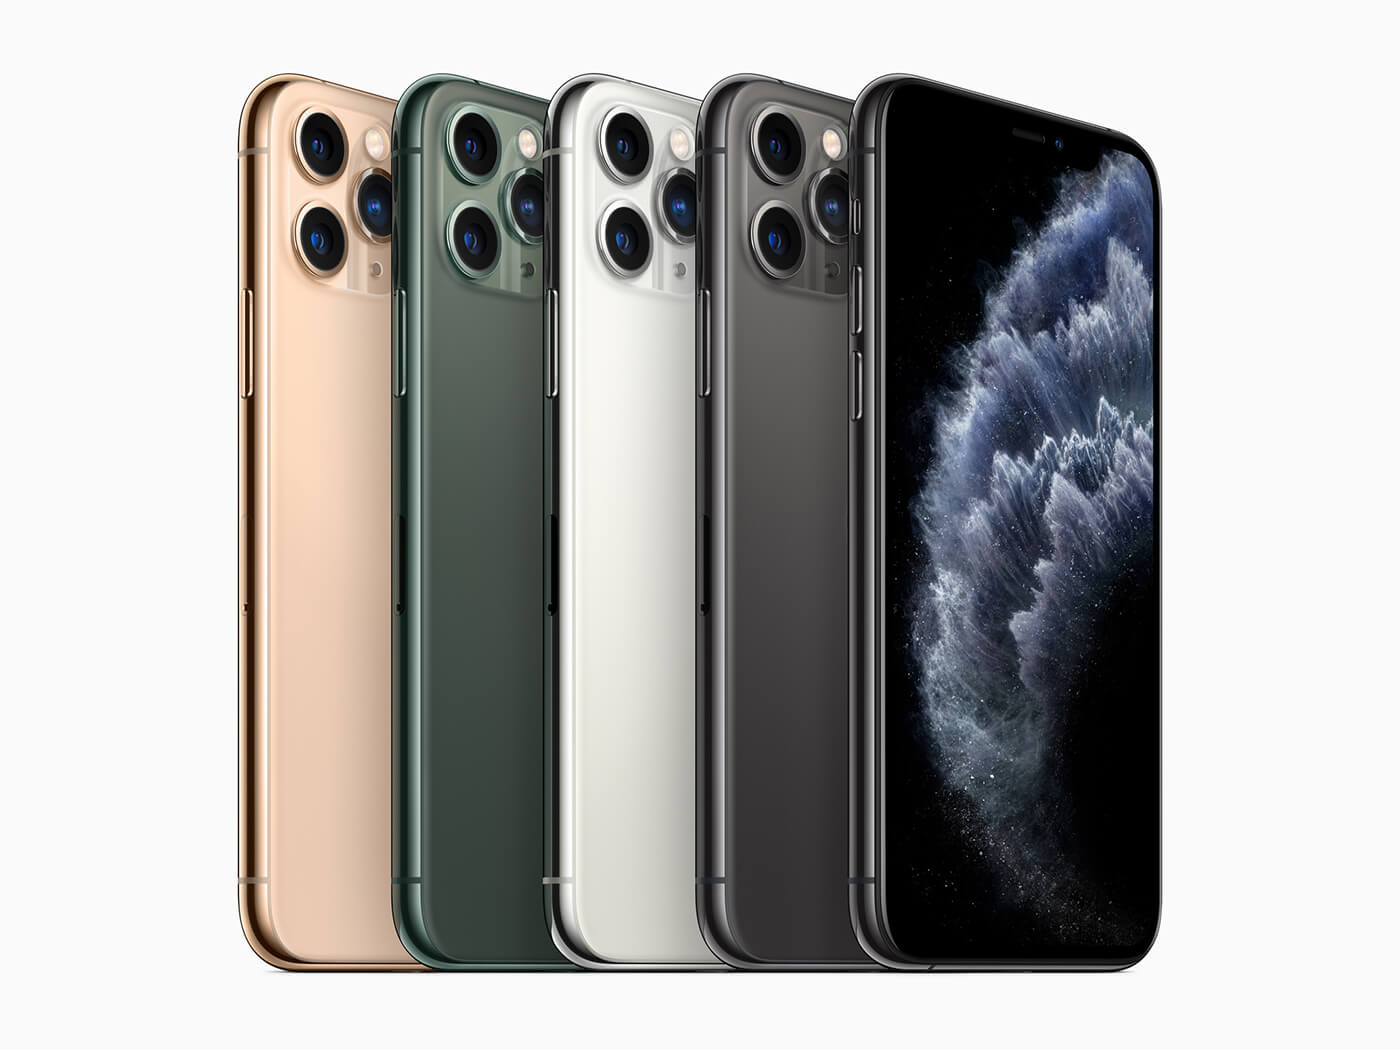 Apple iPhone 11 Pro sports Dolby Atmos and Audio Zoom